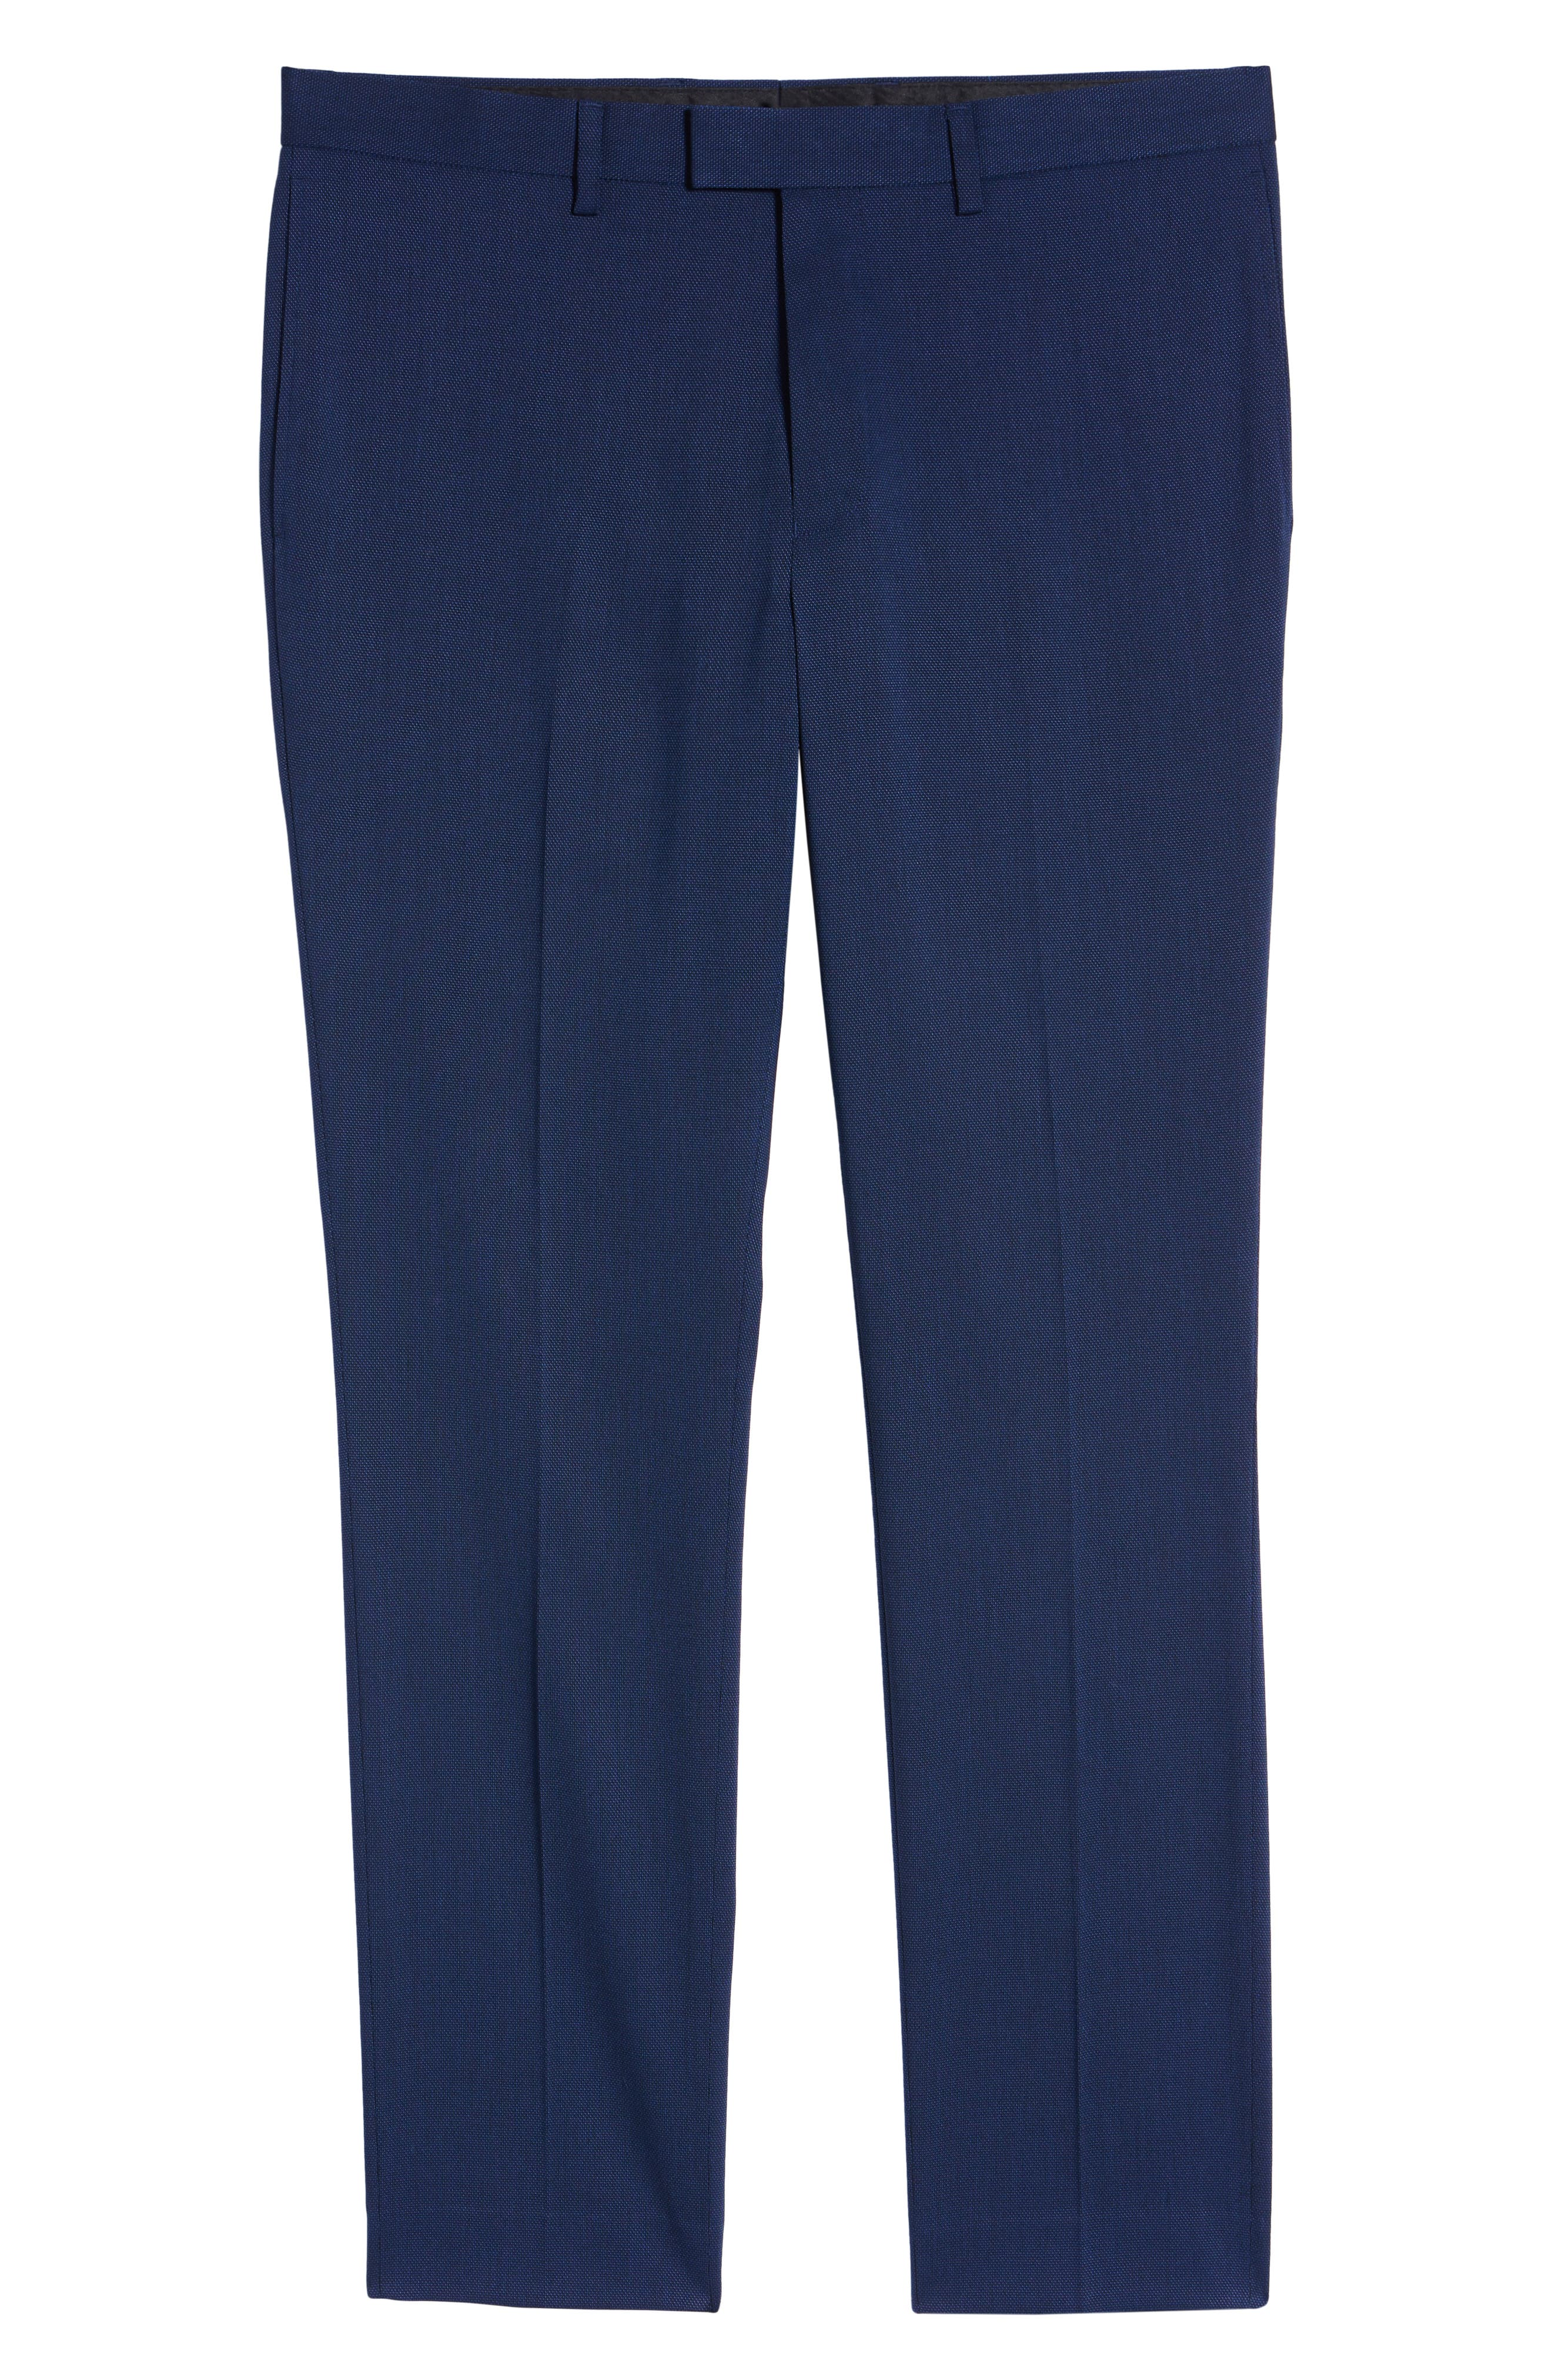 TOPMAN, Skinny Fit Suit Pants, Alternate thumbnail 5, color, MID BLUE